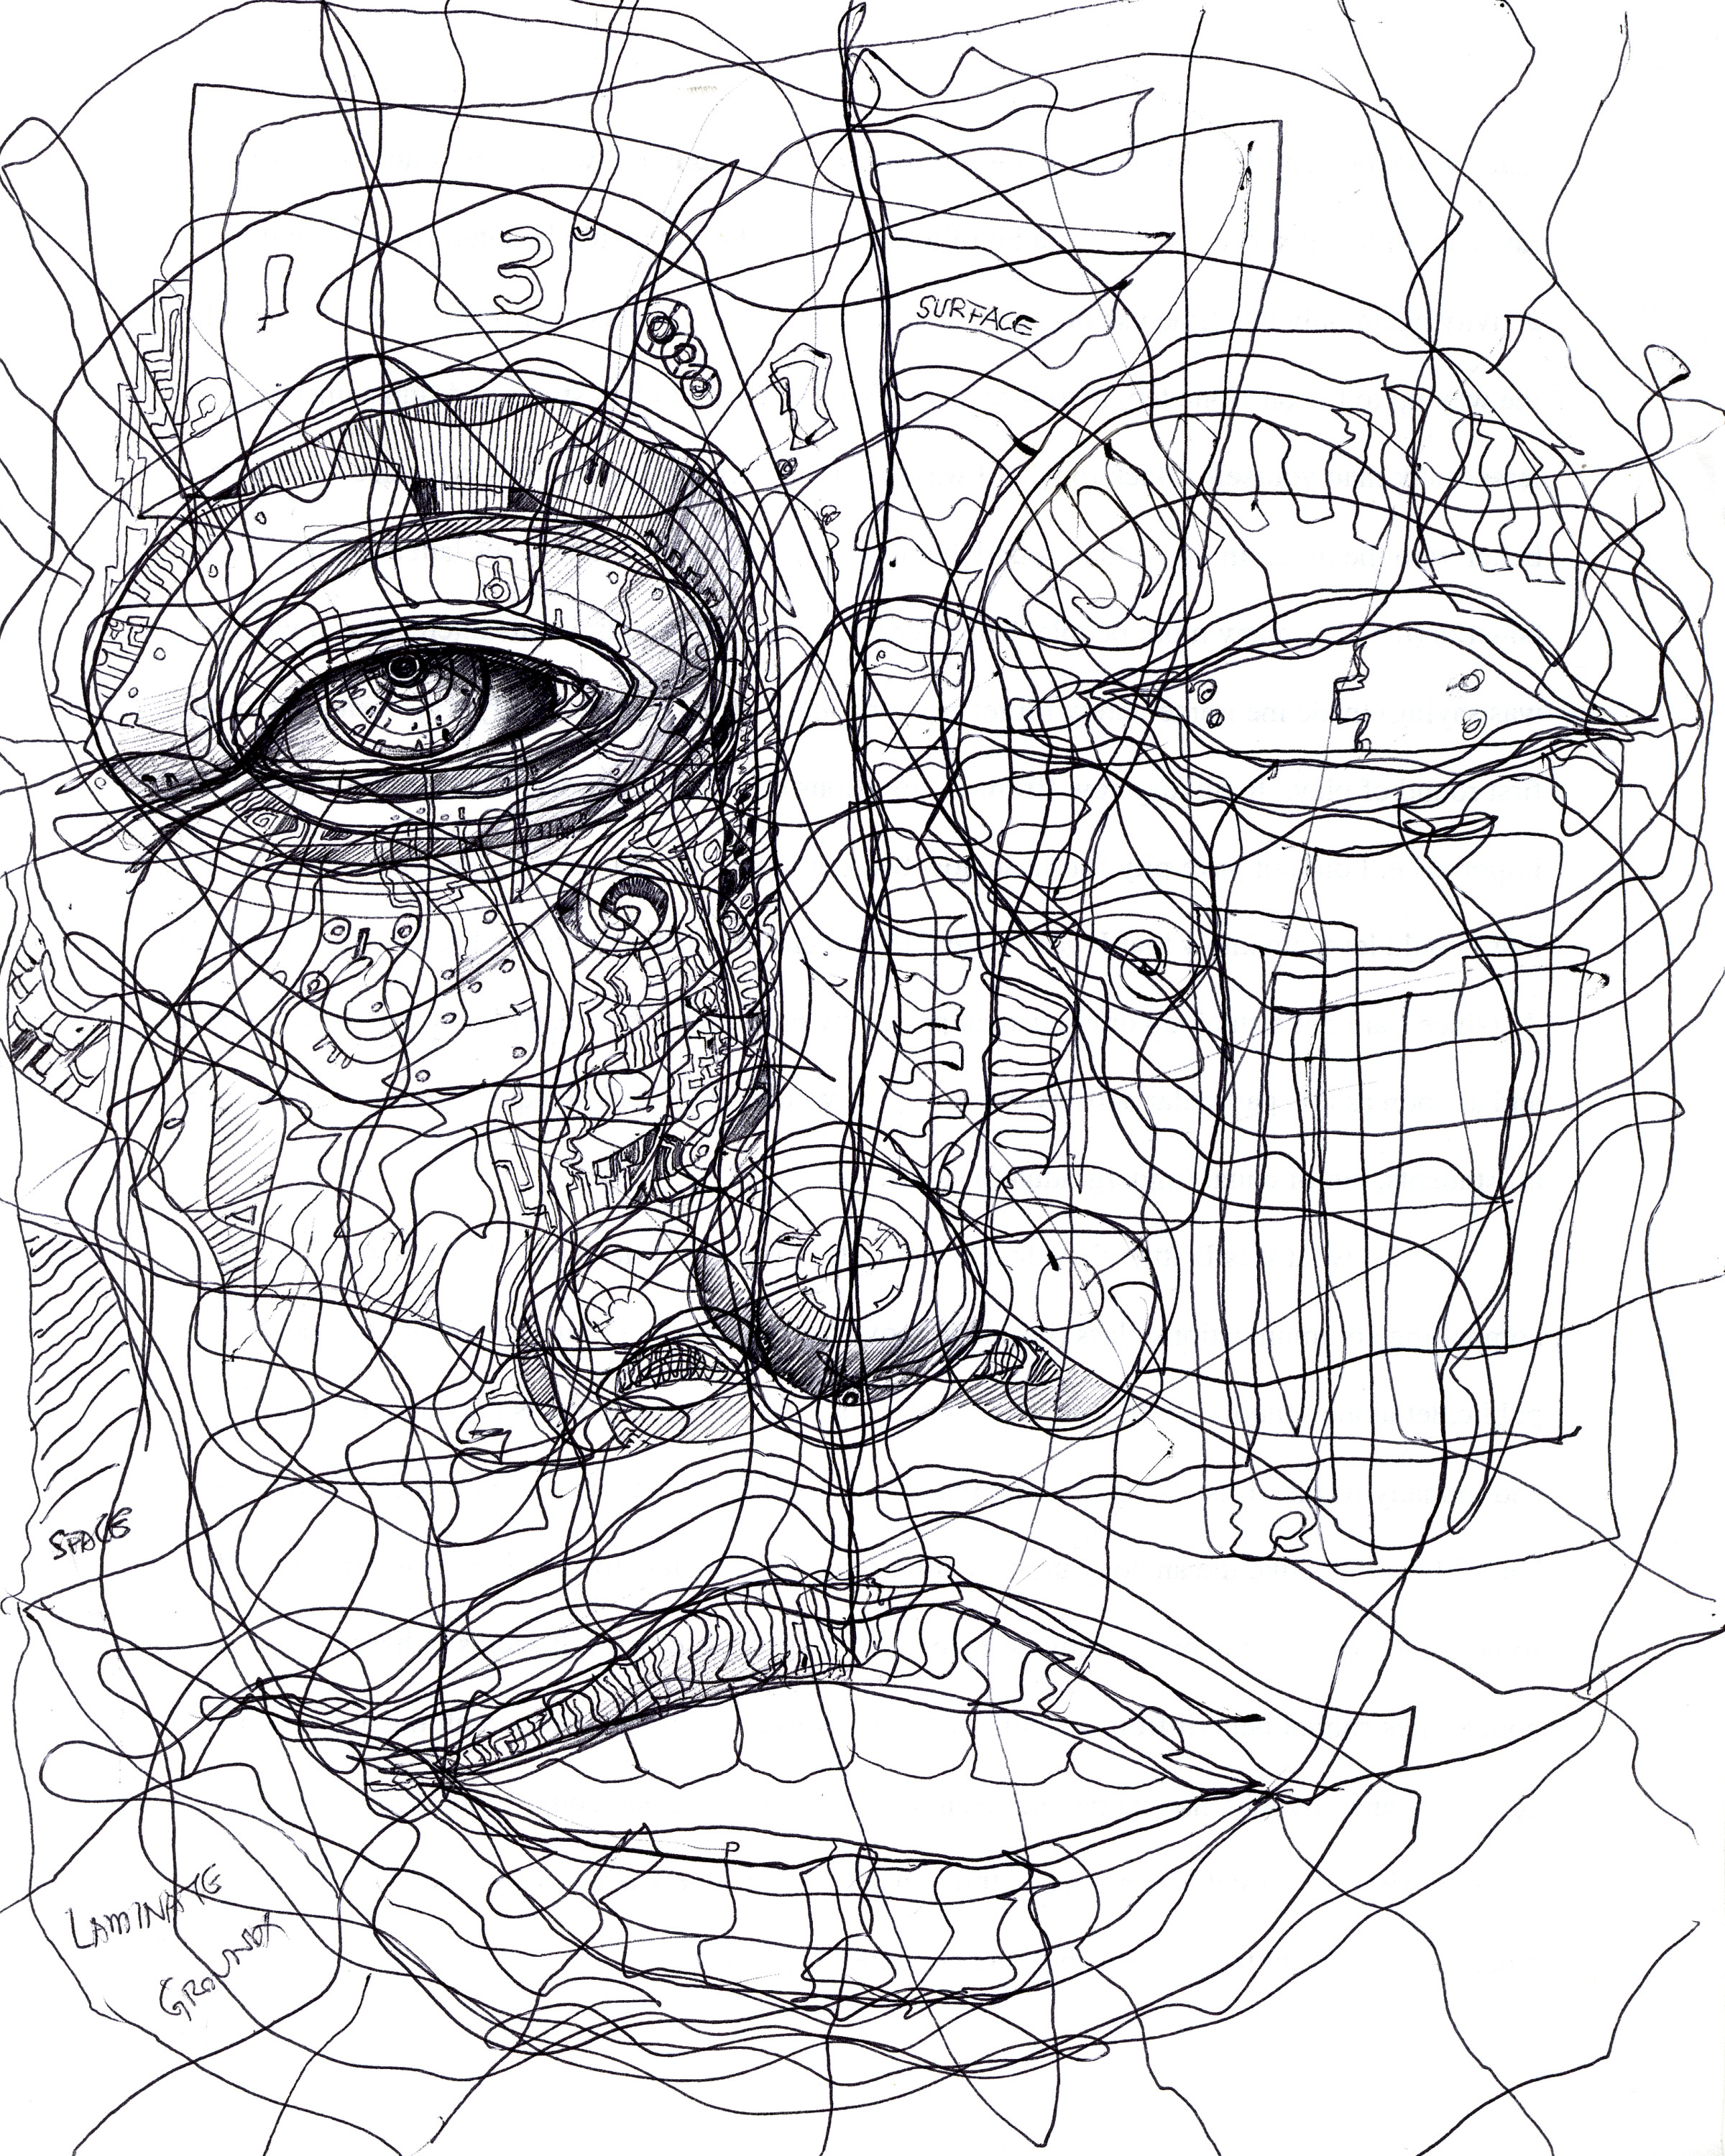 (2008) Face of Lines, Mindless or Madness